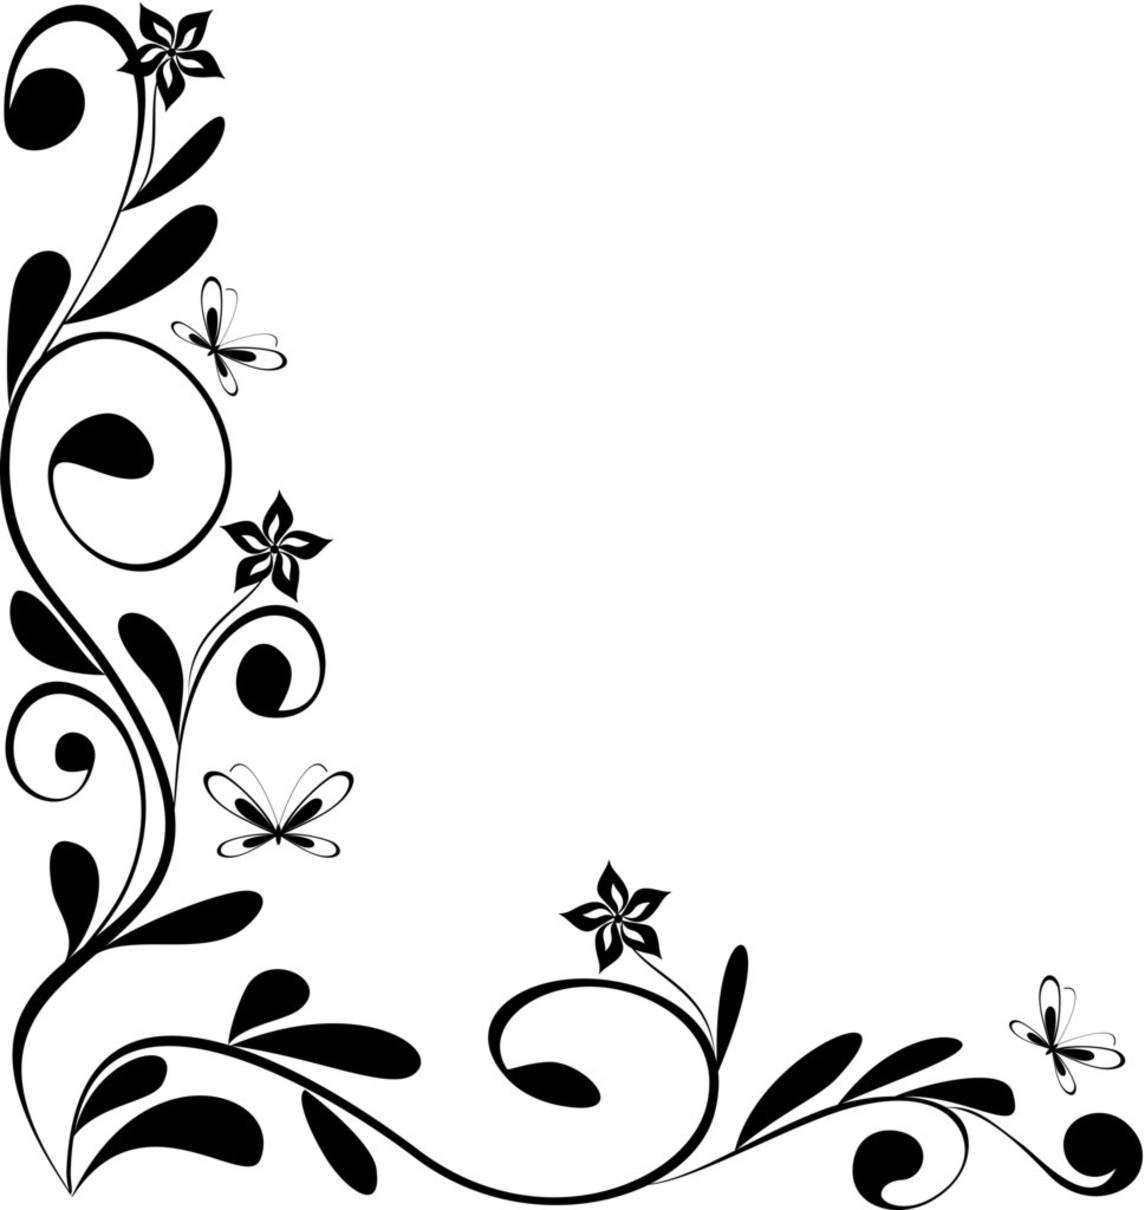 Best and beautiful black and white floral corner borders for frames